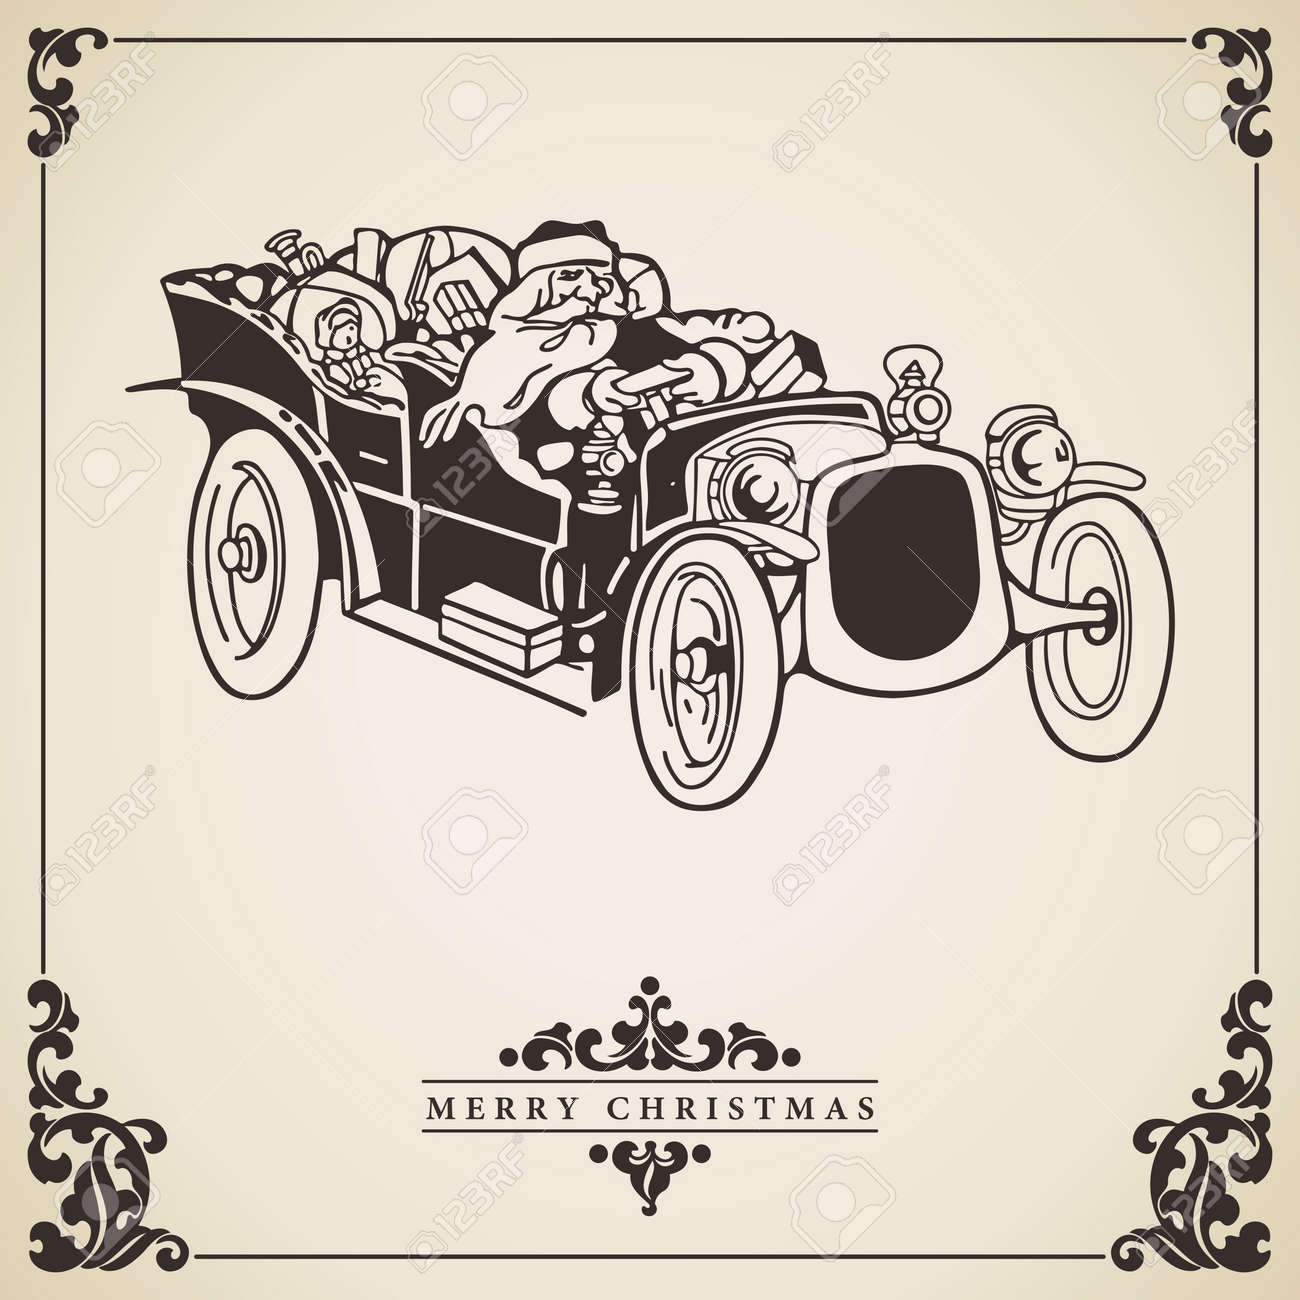 Vector Of Vintage Christmas Card With Santa Claus Driving An ...